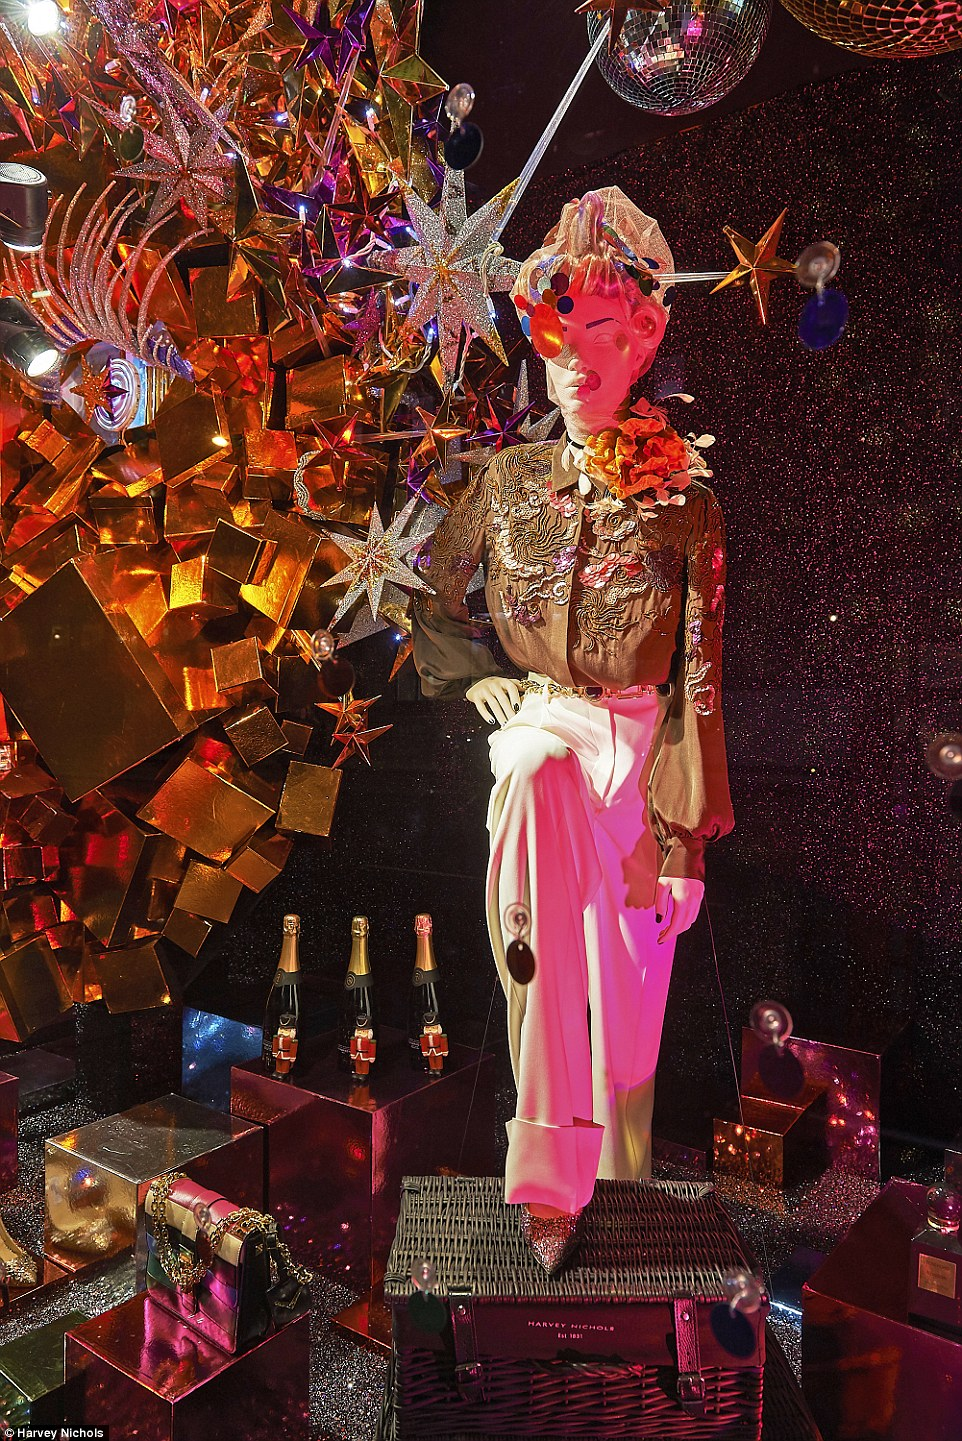 Detail Collective | Lifestyle | Best Christmas Windows 2015 | Image:  Harvey Nichols